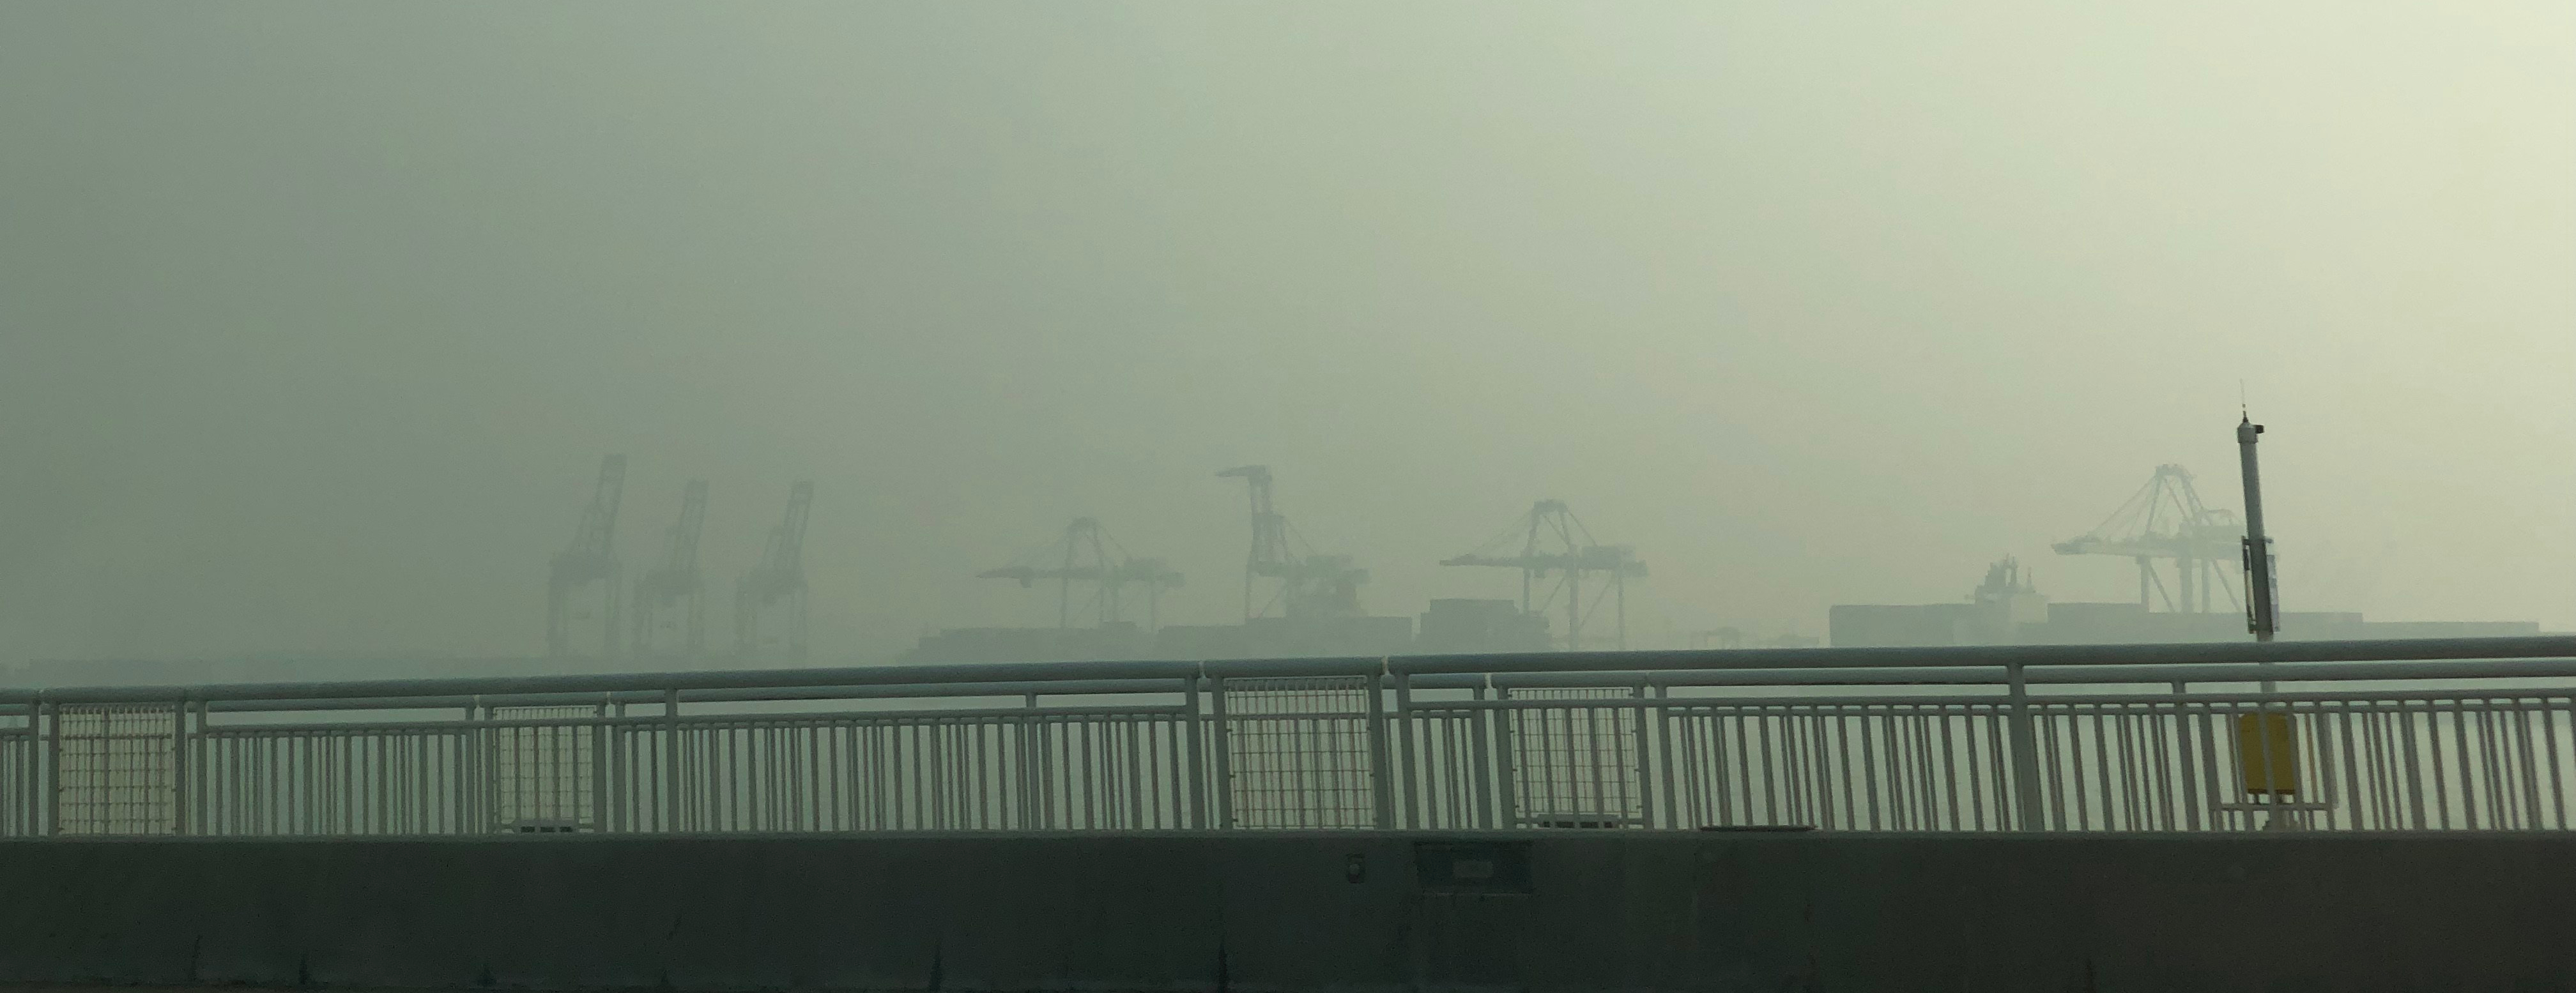 shipping container cranes are hidden by smoke in the distance beyond the bridge's railing